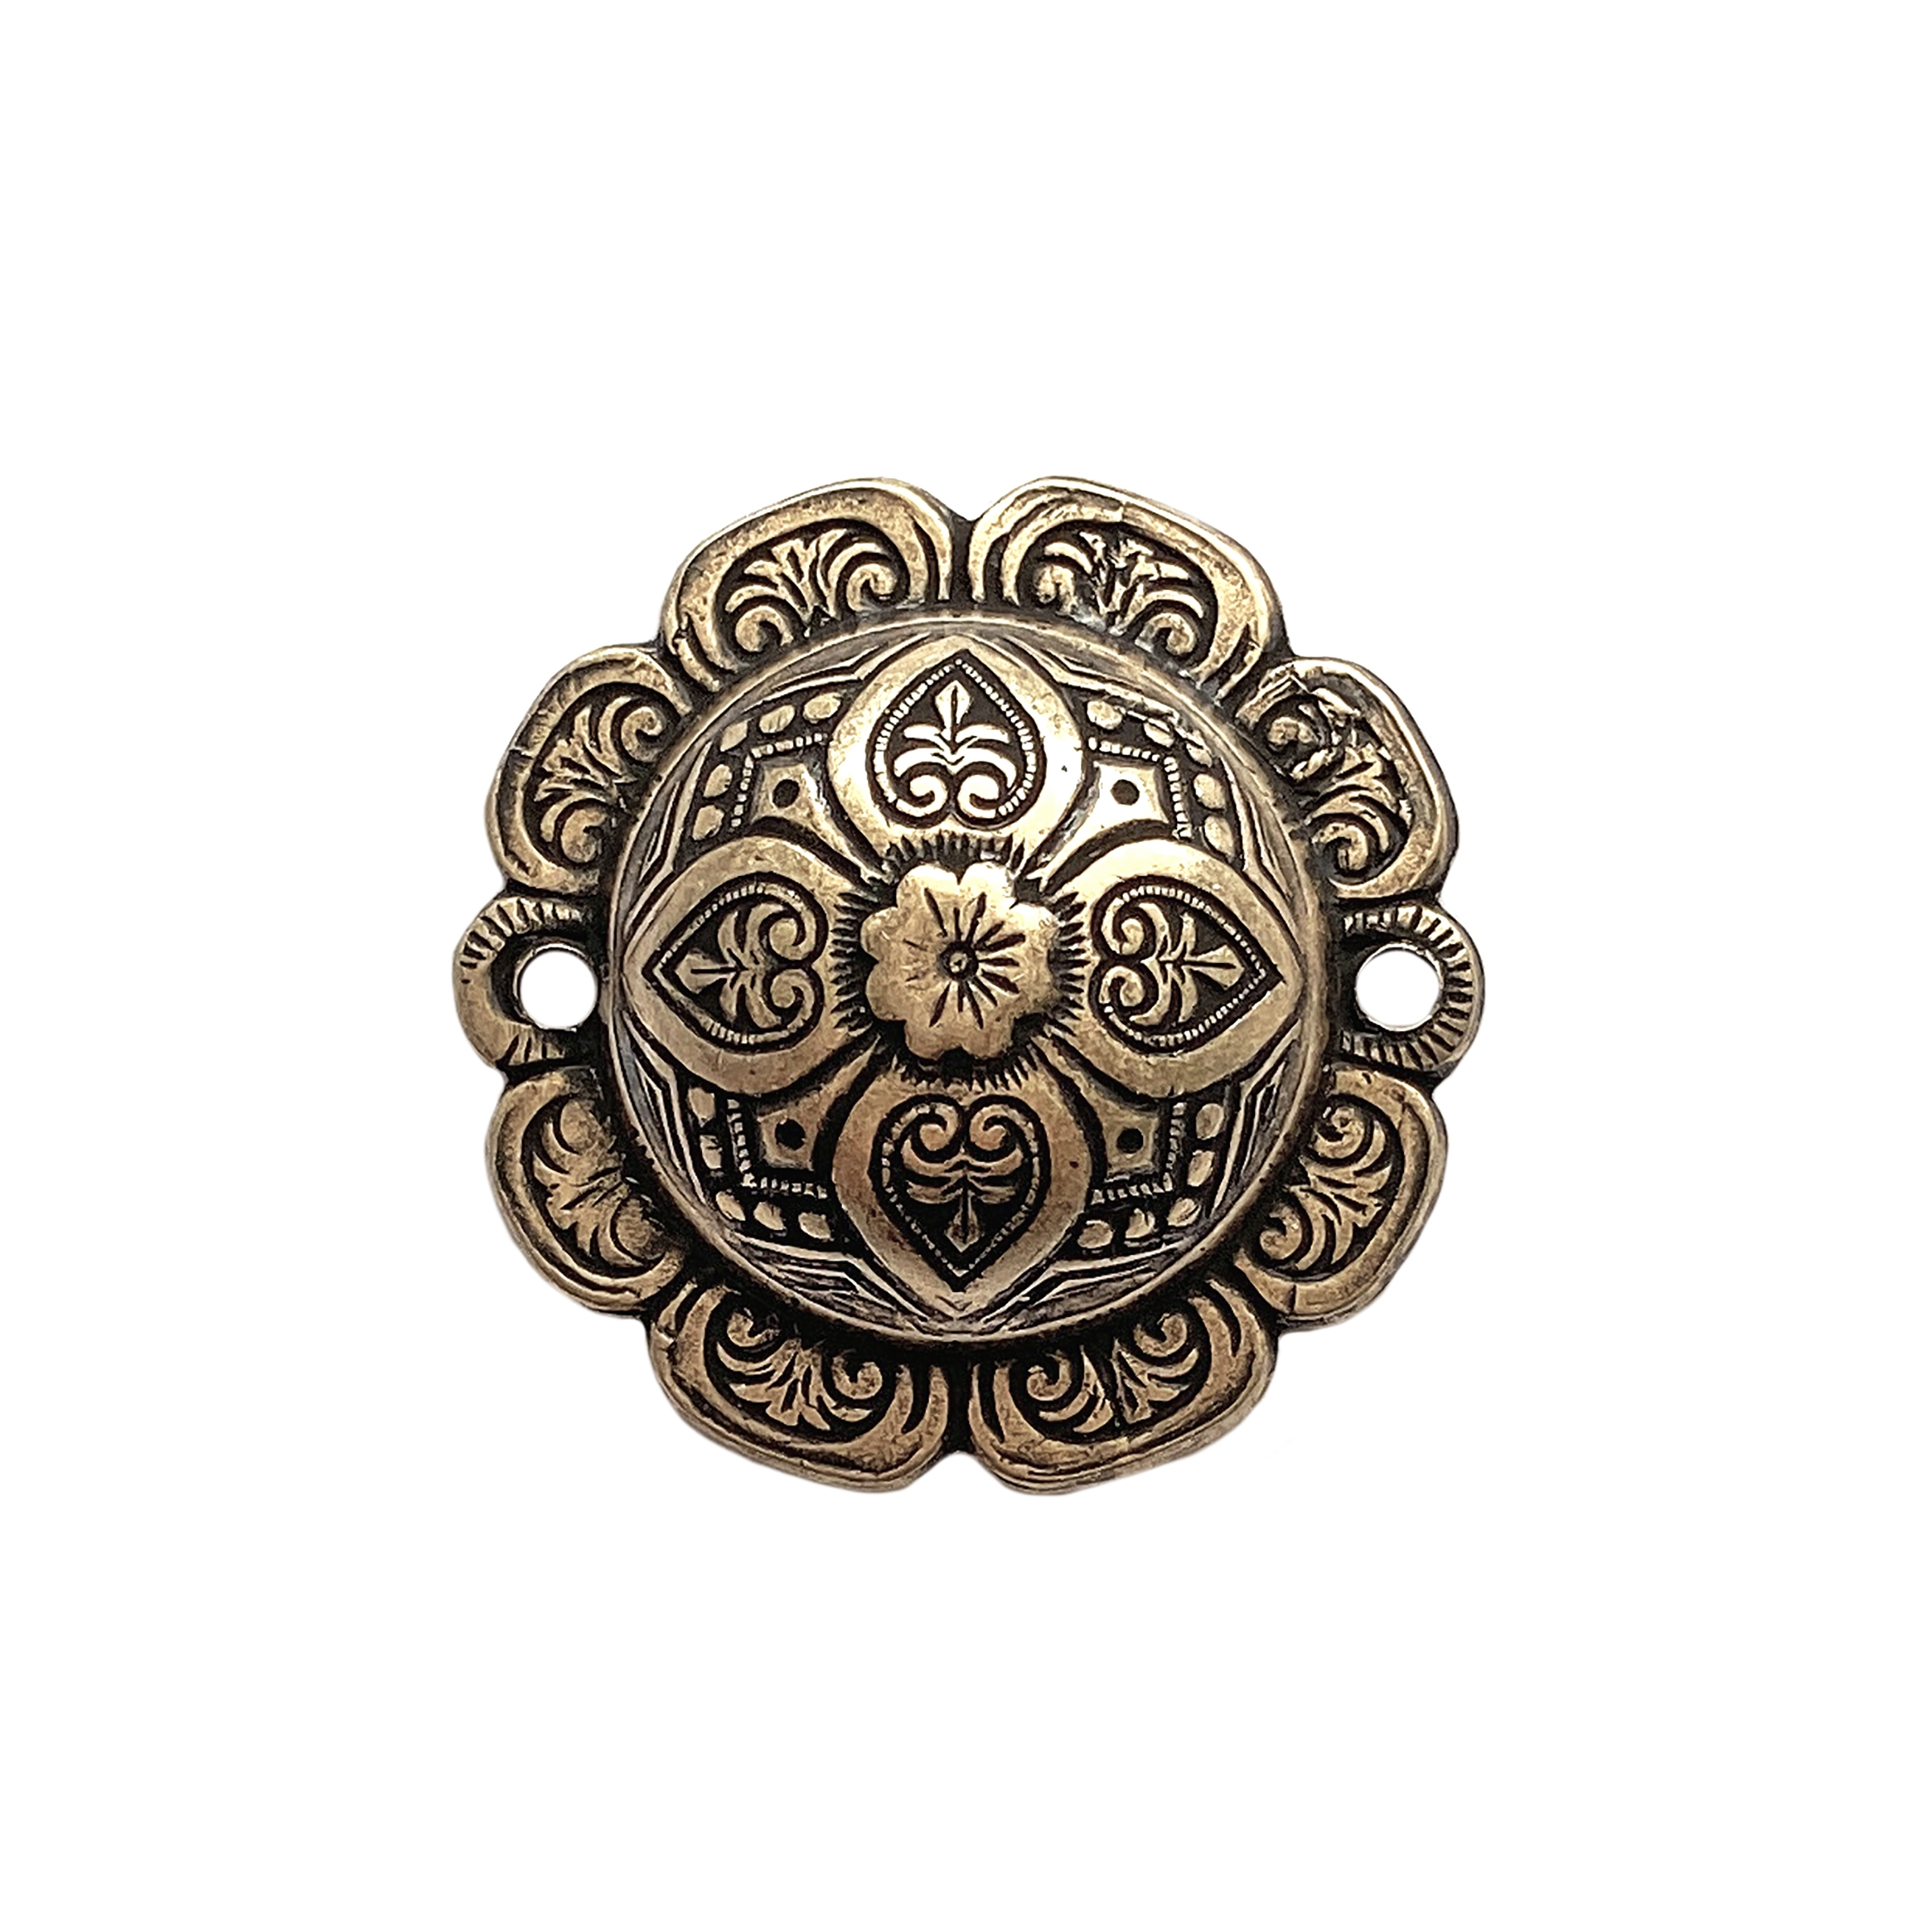 domed connector, brass ox, connector, 27mm, brass stamping, domed, dapt, Victorian, floral pattern, floral, floral design, connector, US-made, nickel-free, B'sue Boutiques, vintage supplies, jewelry findings, jewelry supplies, stampings brass, 02079